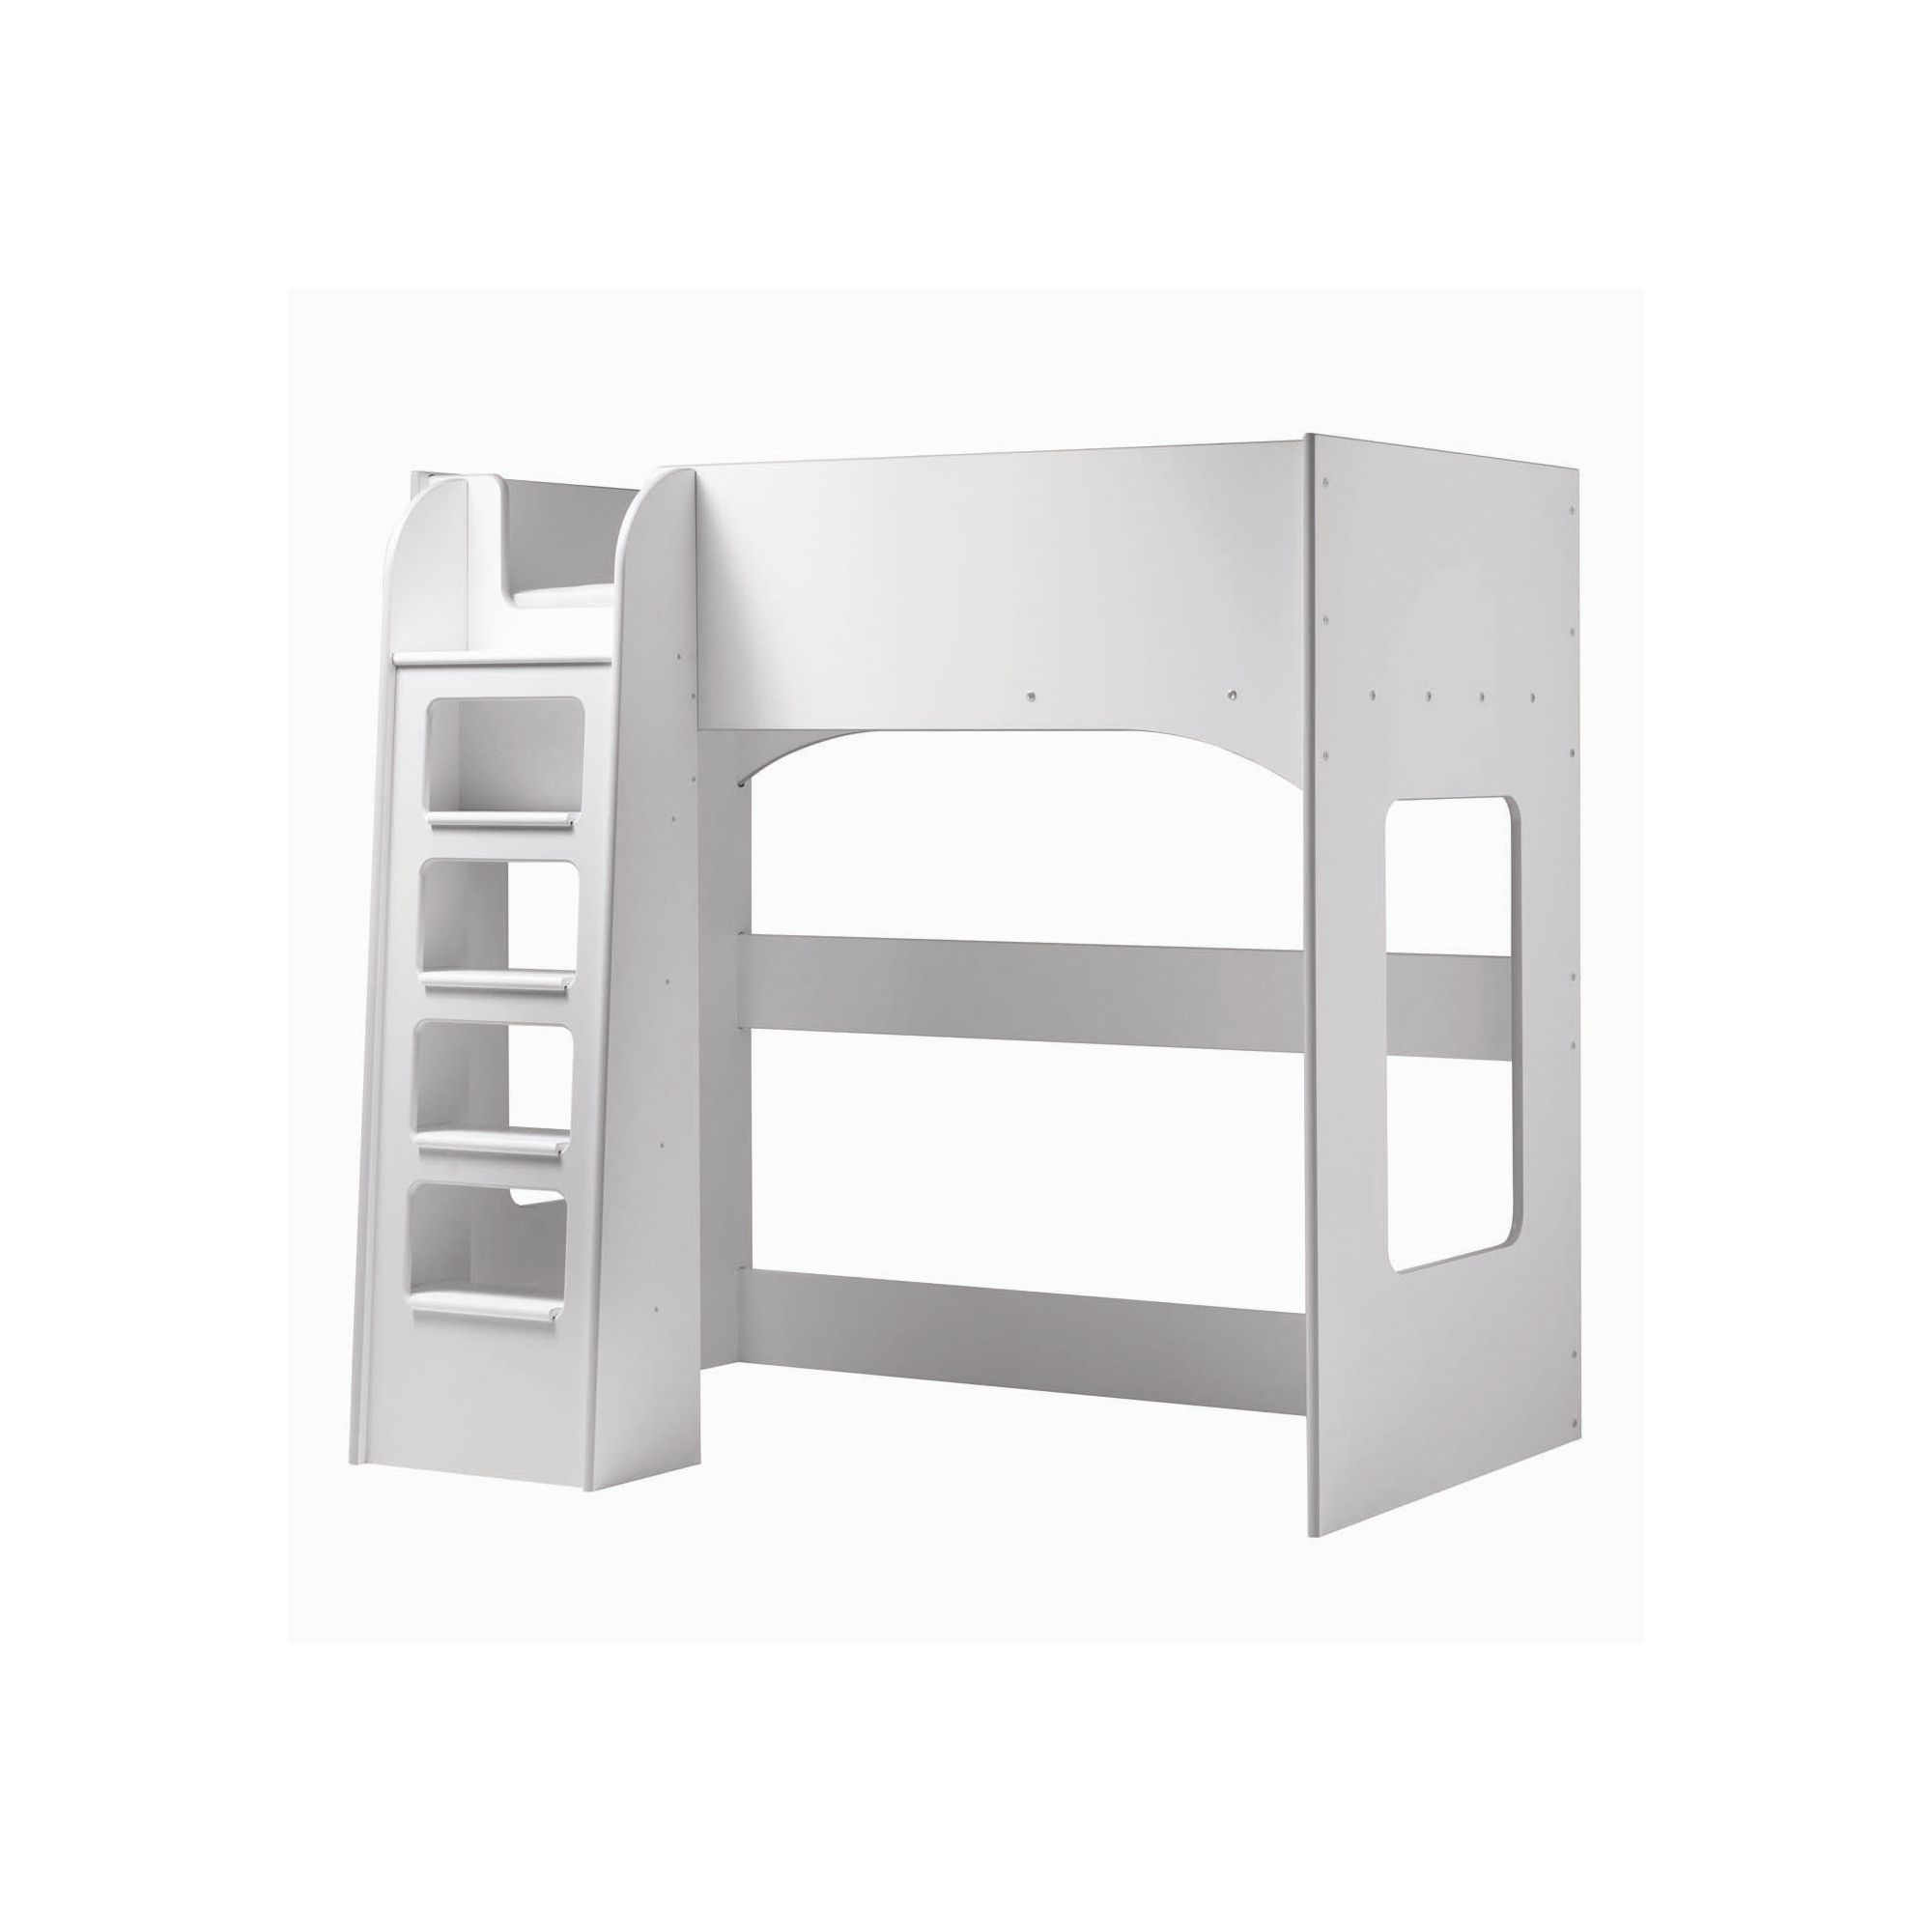 Caxton MyPod Cabin Single Bed Frame at Tescos Direct